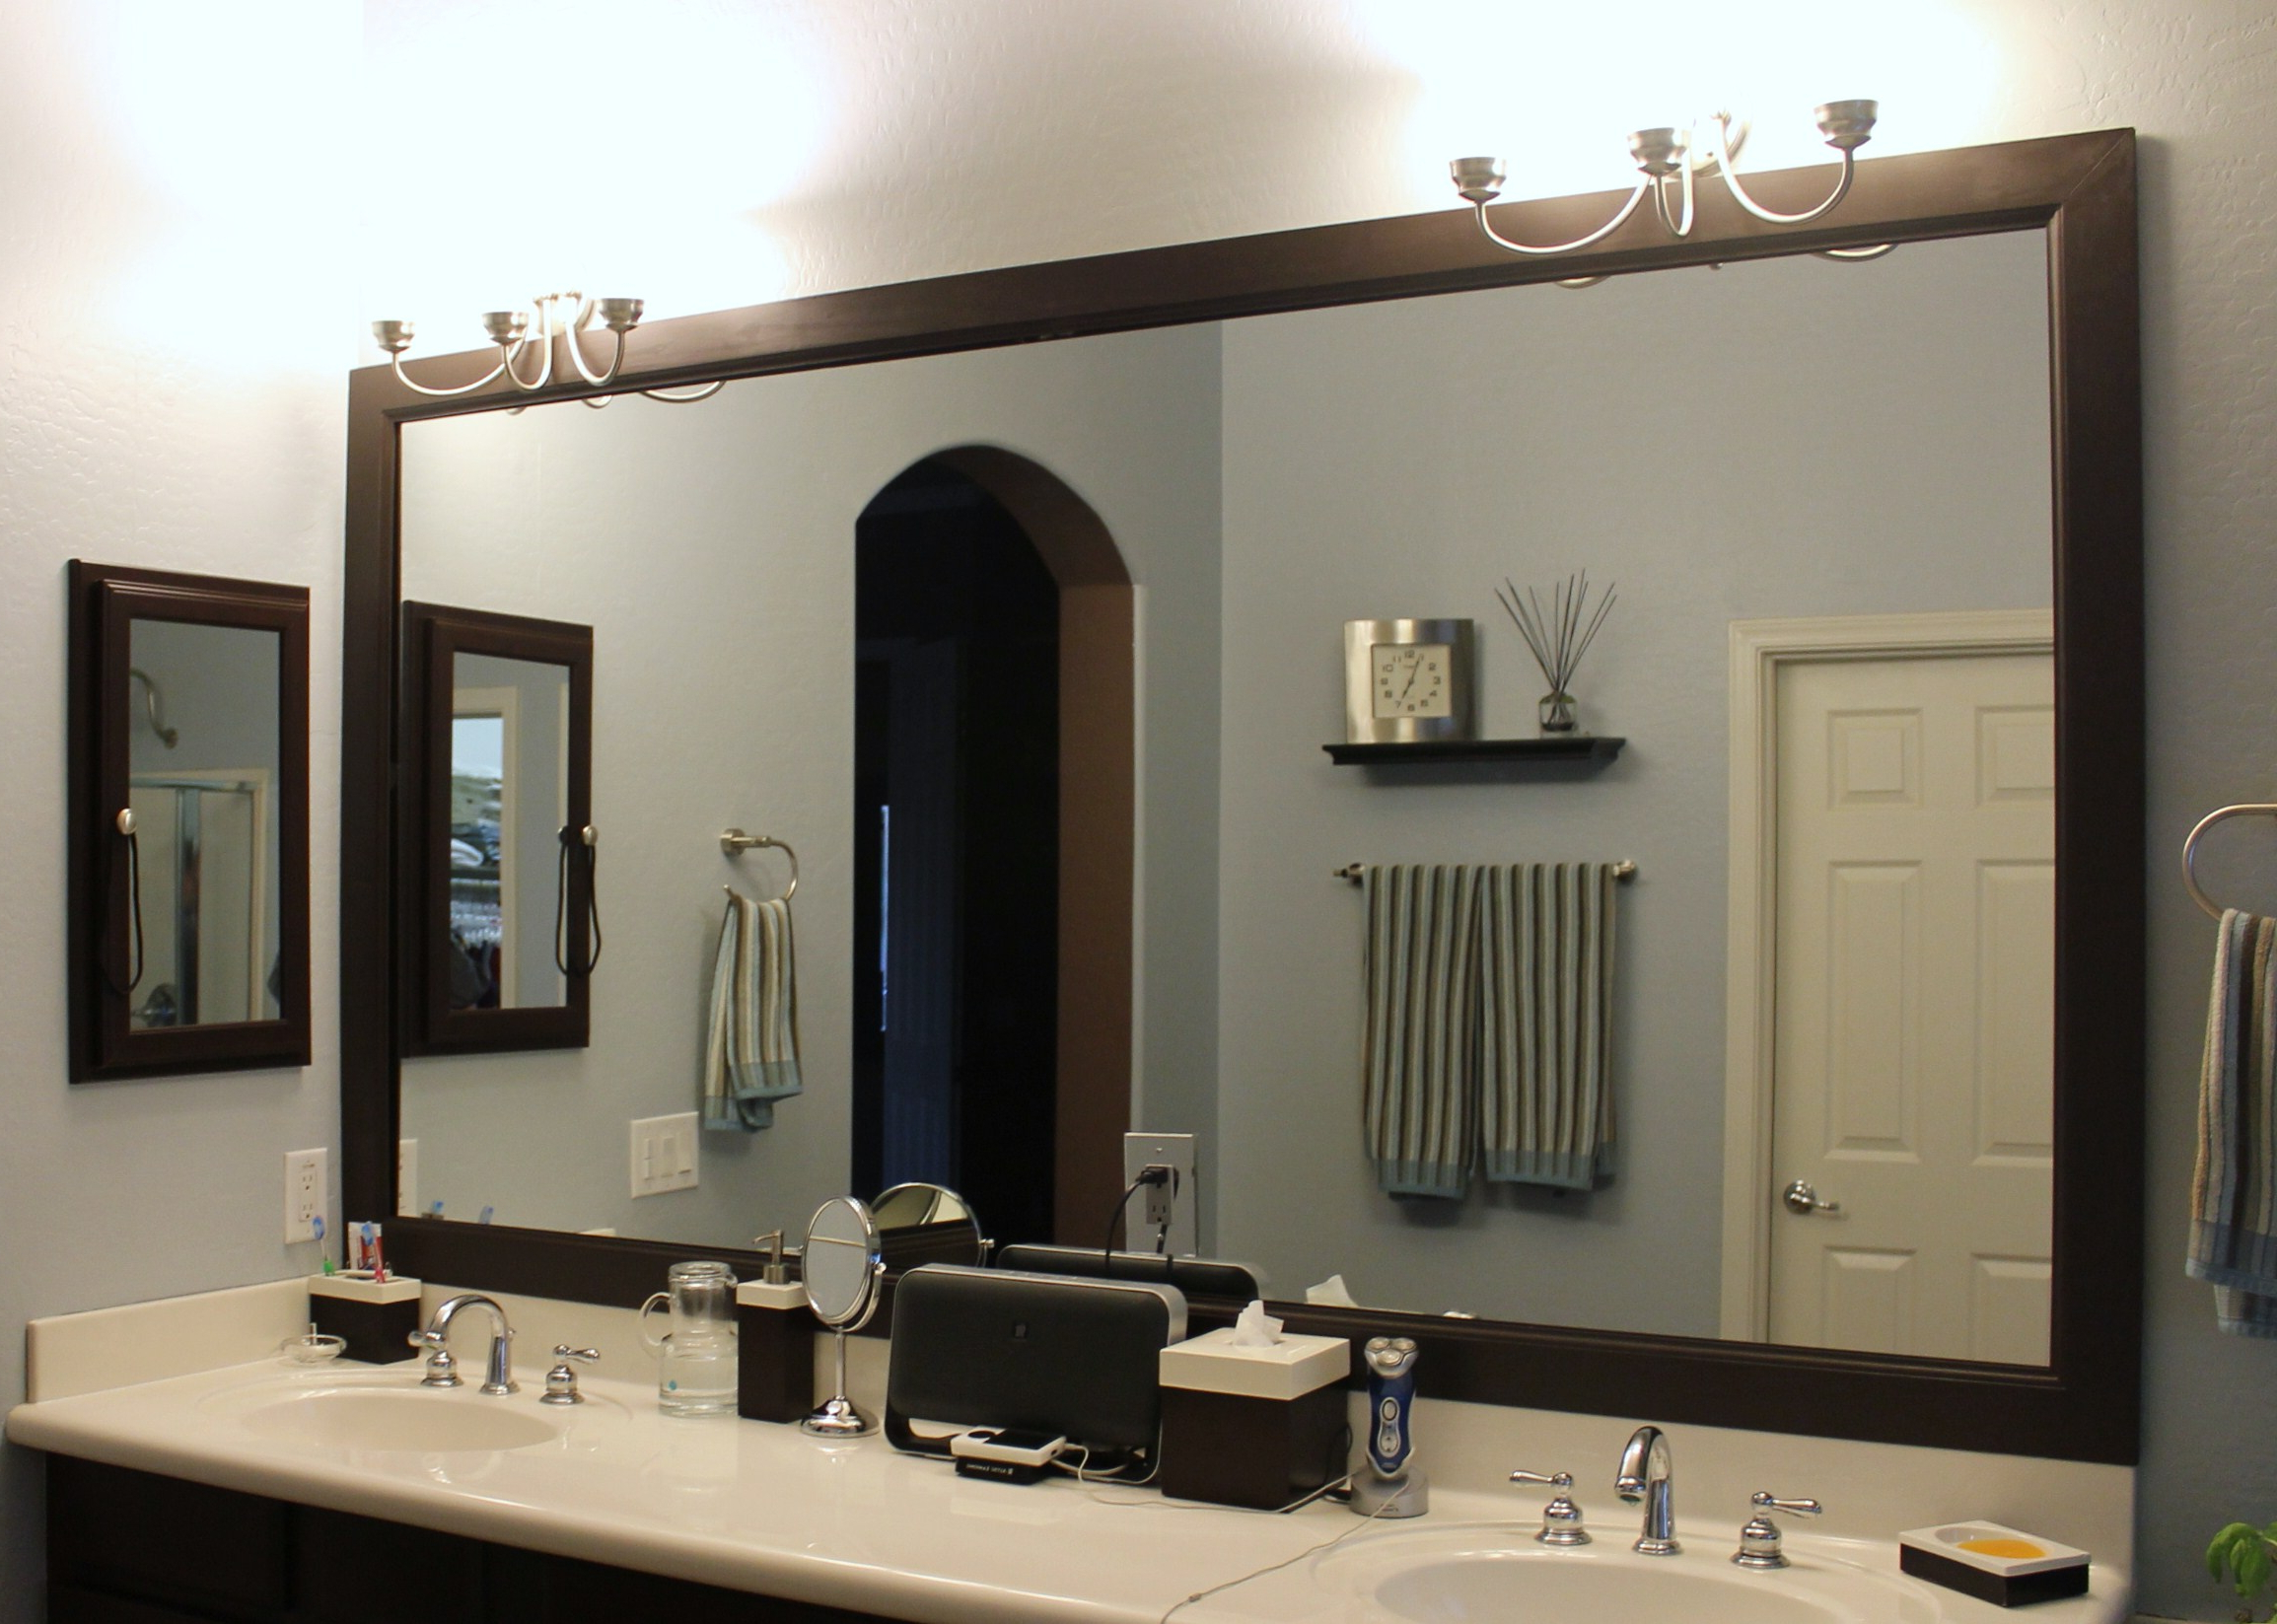 Delightful Framed Mirrors For Bathrooms Ideas – Kiakiyo In Best And Newest Frame Bathroom Wall Mirrors (View 5 of 20)